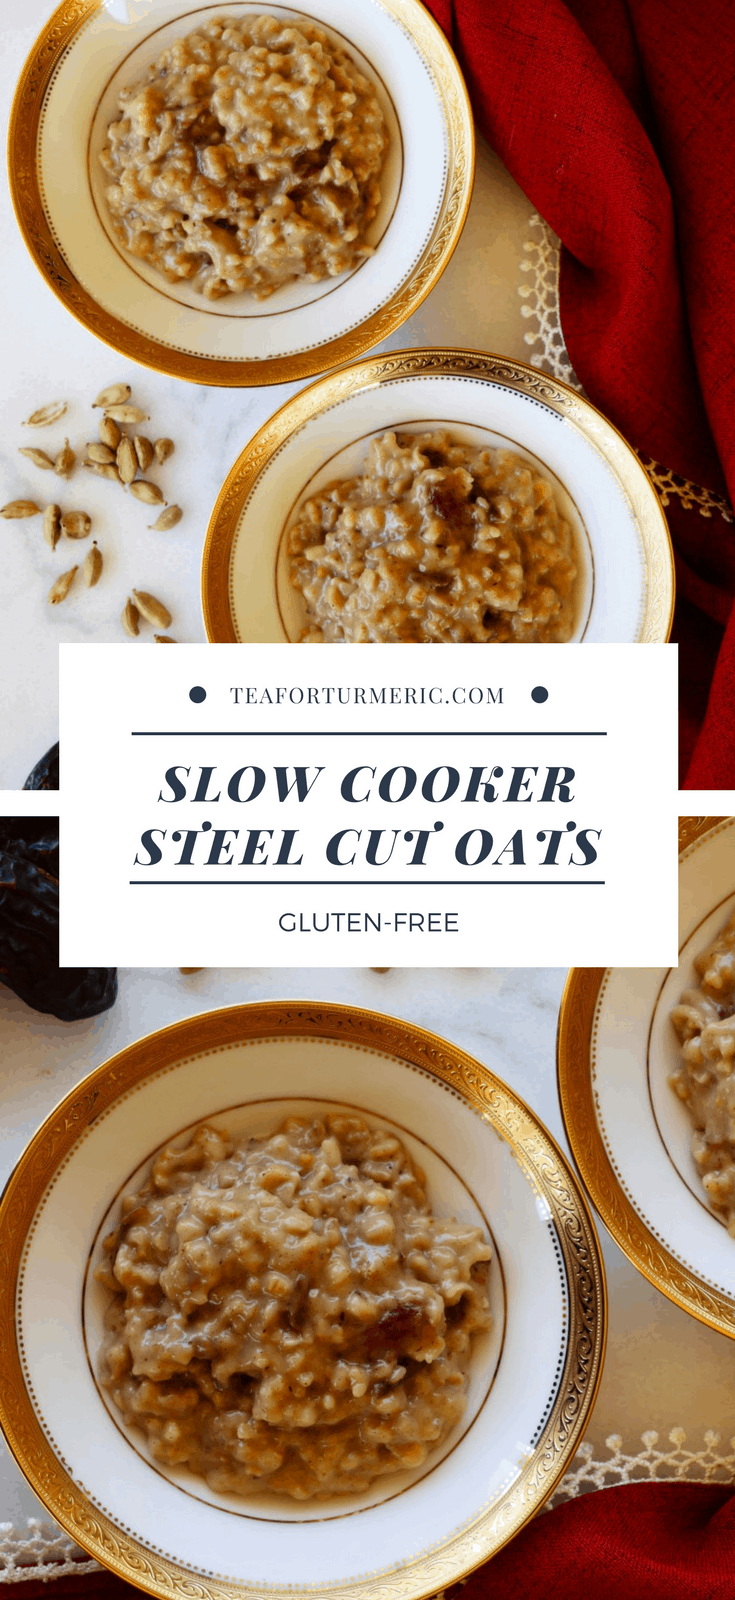 These Date-Sweetened Slow Cooker Steel Cut Oats are the perfect overnight breakfast. Full of fiber and nutrients, this is a healthy set-and-forget recipe that actually tastes wonderful!  #slowcooker #breakfastrecipes